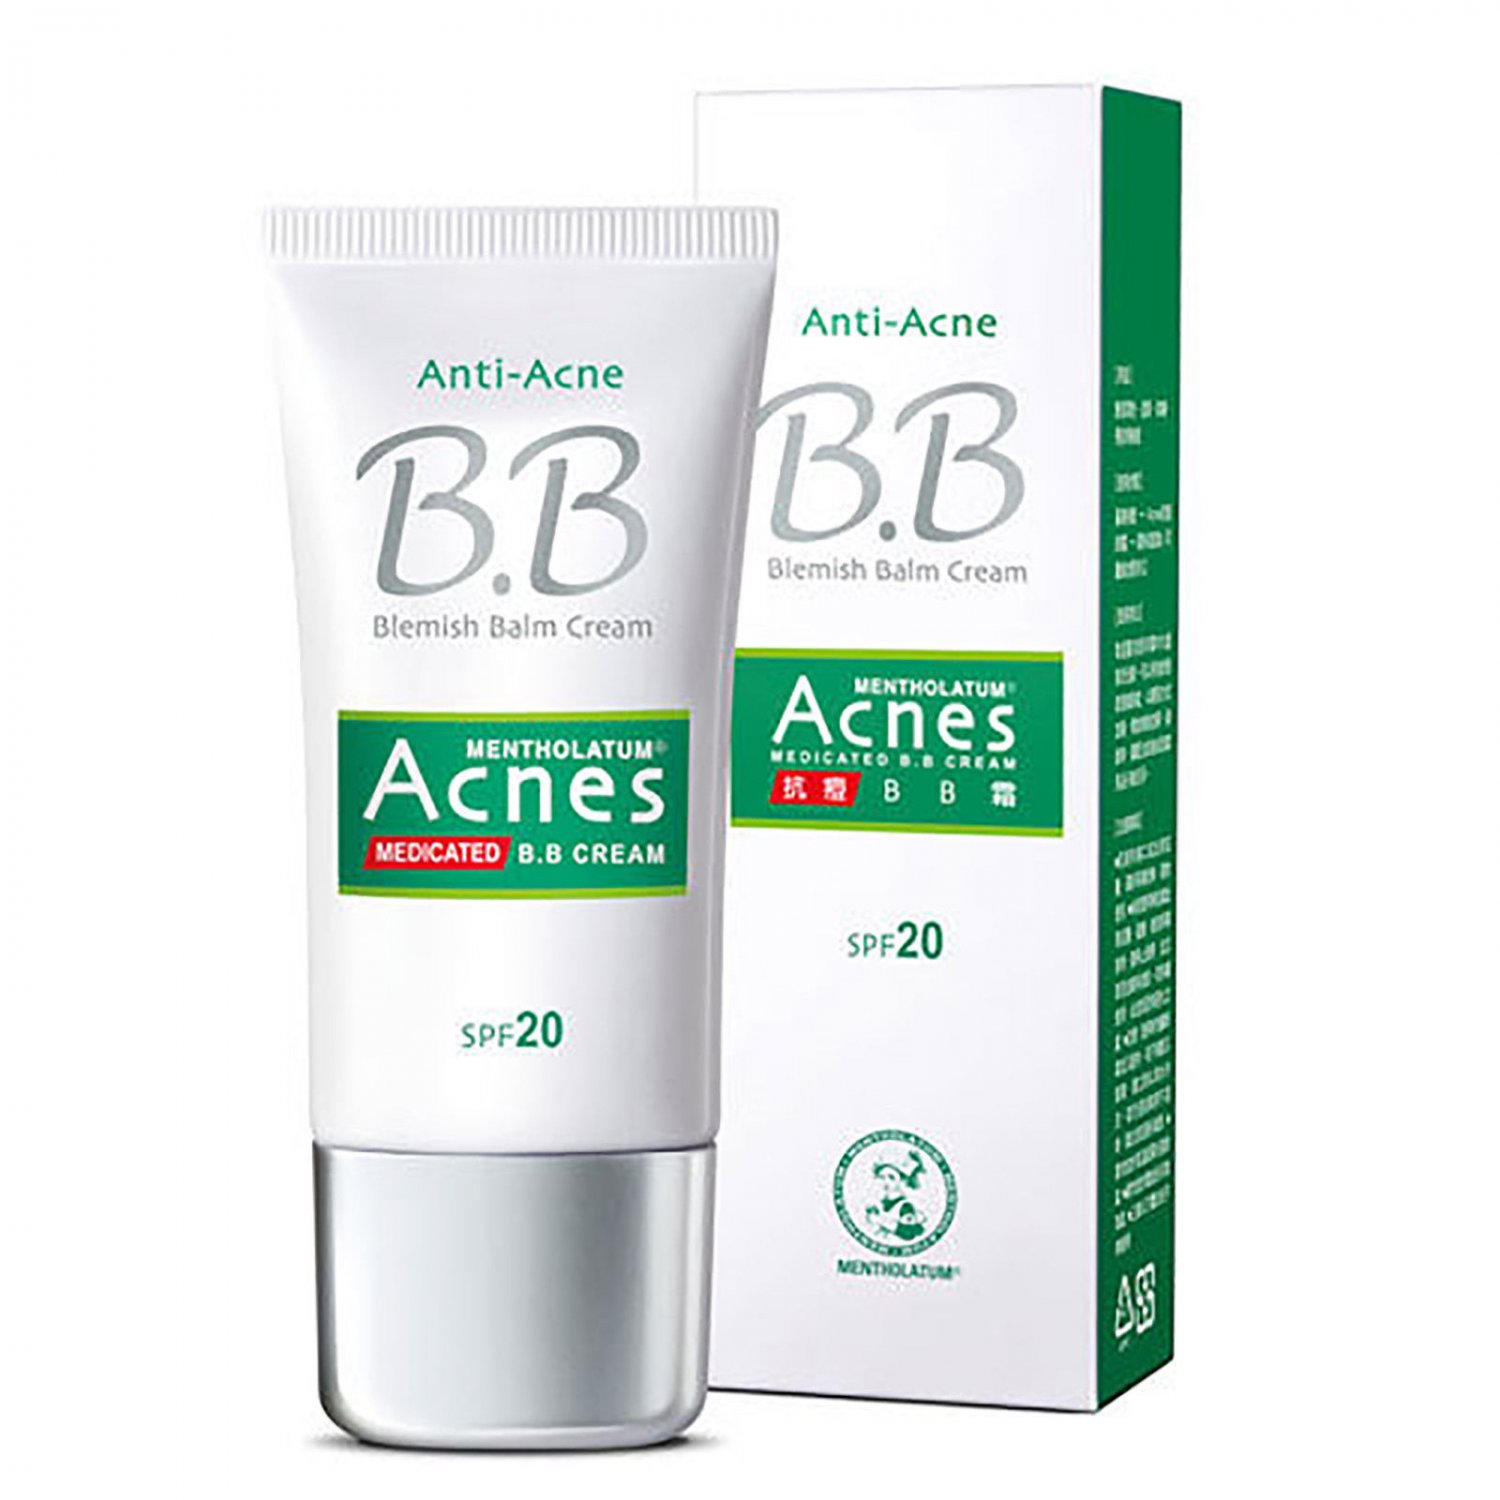 mentholatum acnes medicated anti acne bb cream with spf20 30g. Black Bedroom Furniture Sets. Home Design Ideas